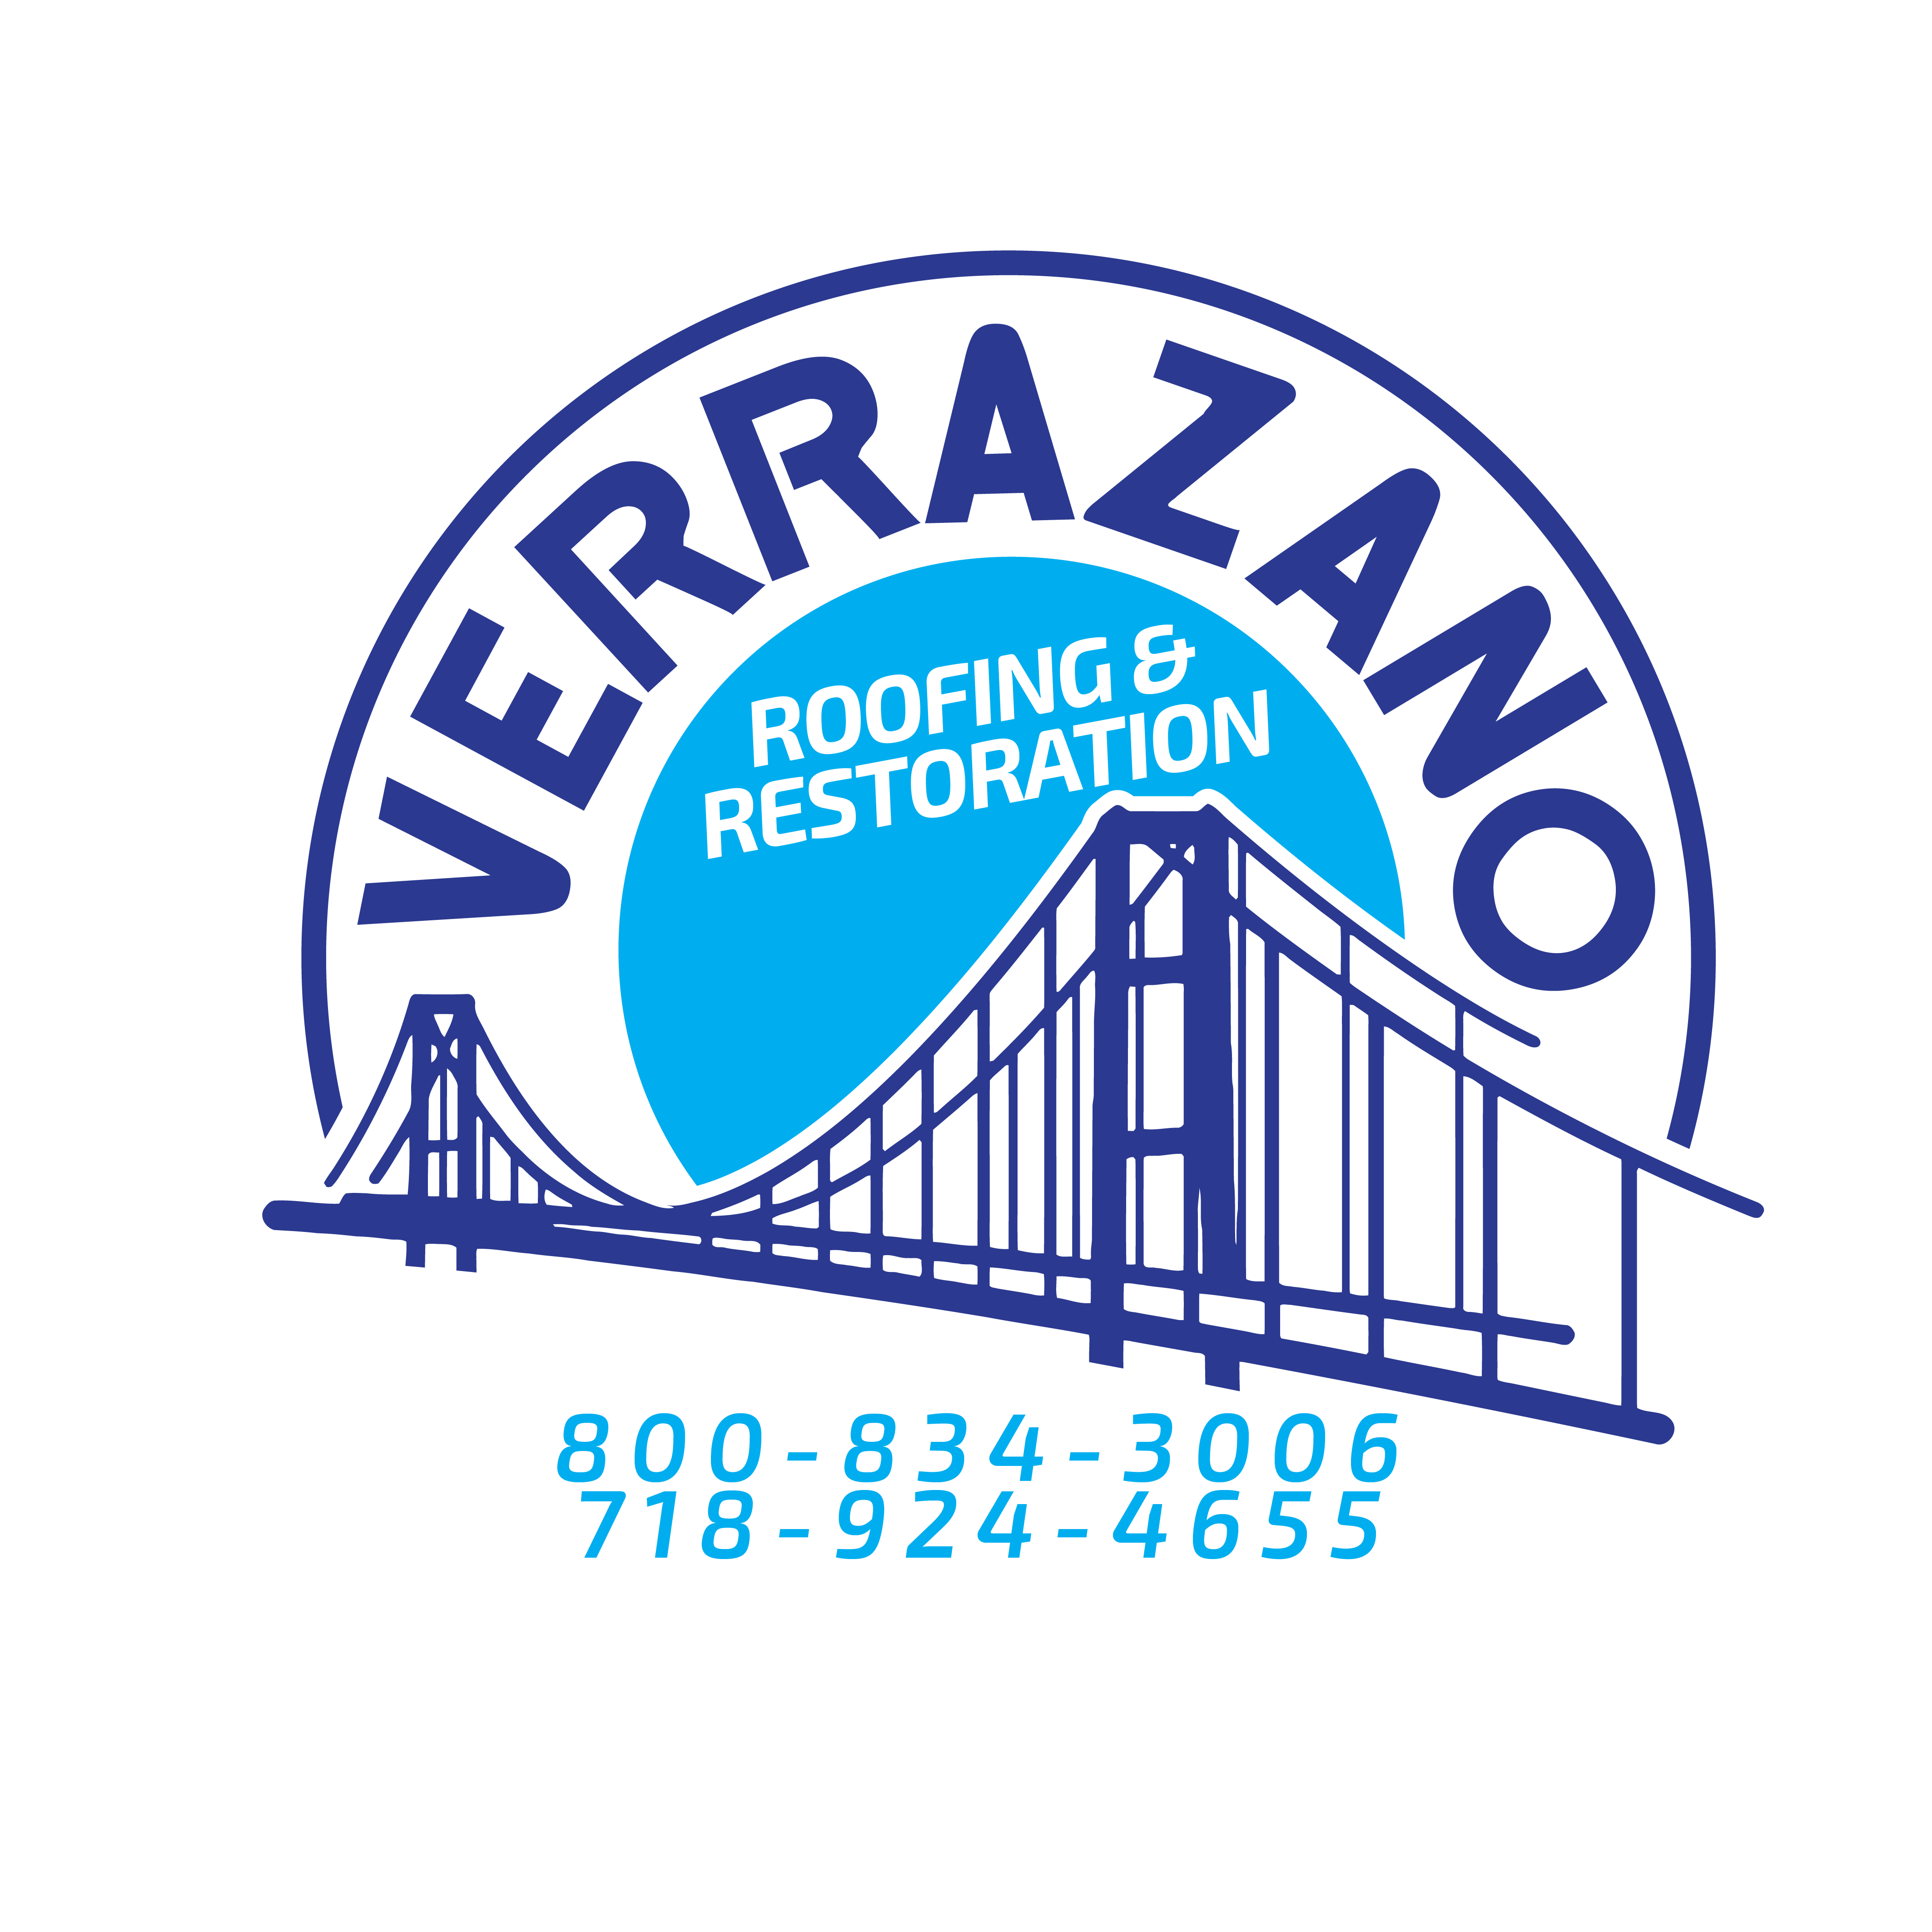 Think You May Be Missing Some Flashing Verrazano Roofing Ny